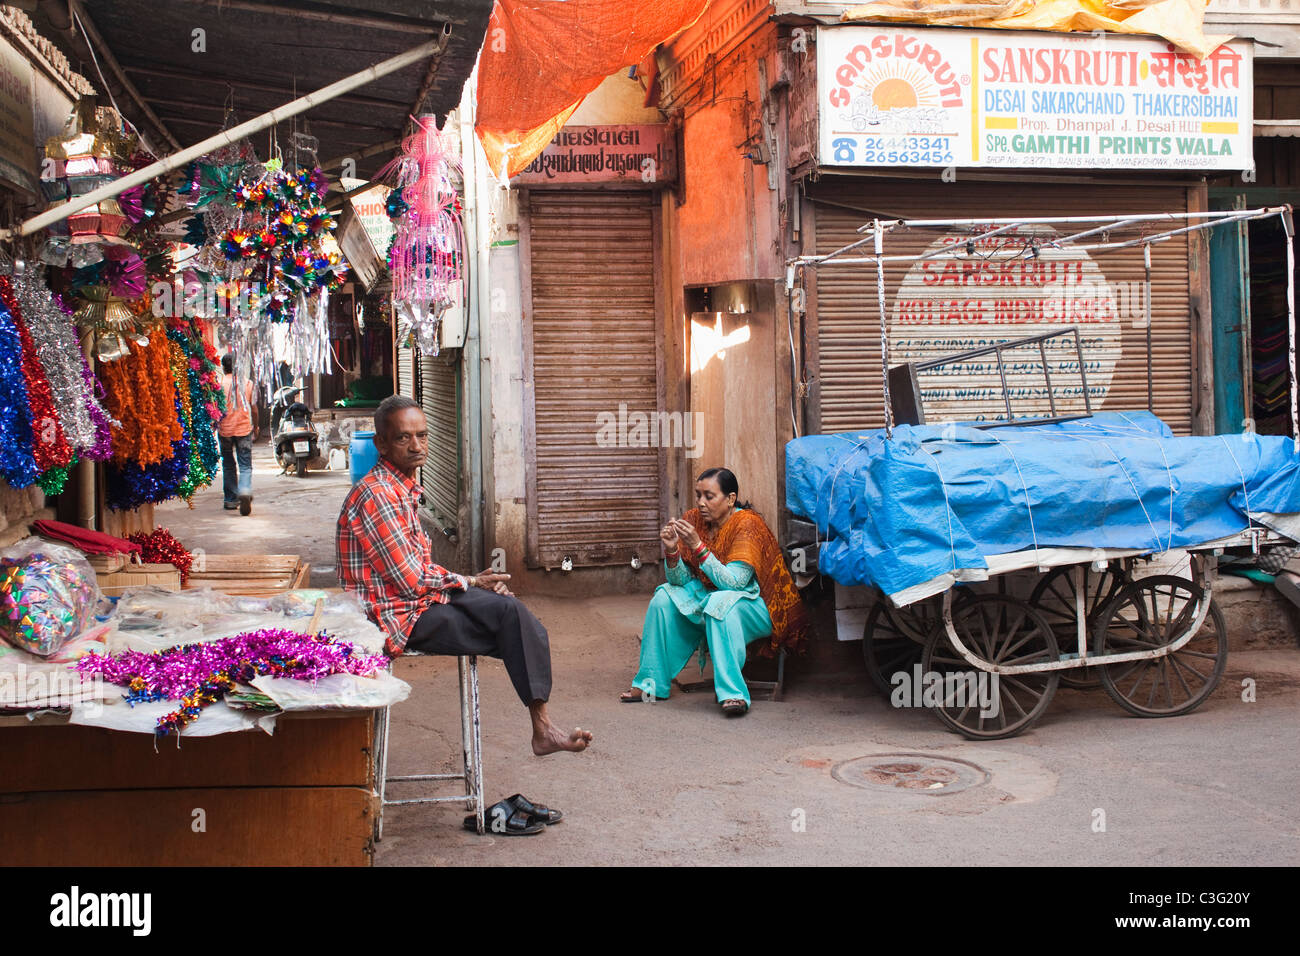 Tinsel products shop in a street, Ahmedabad, Gujarat, India - Stock Image